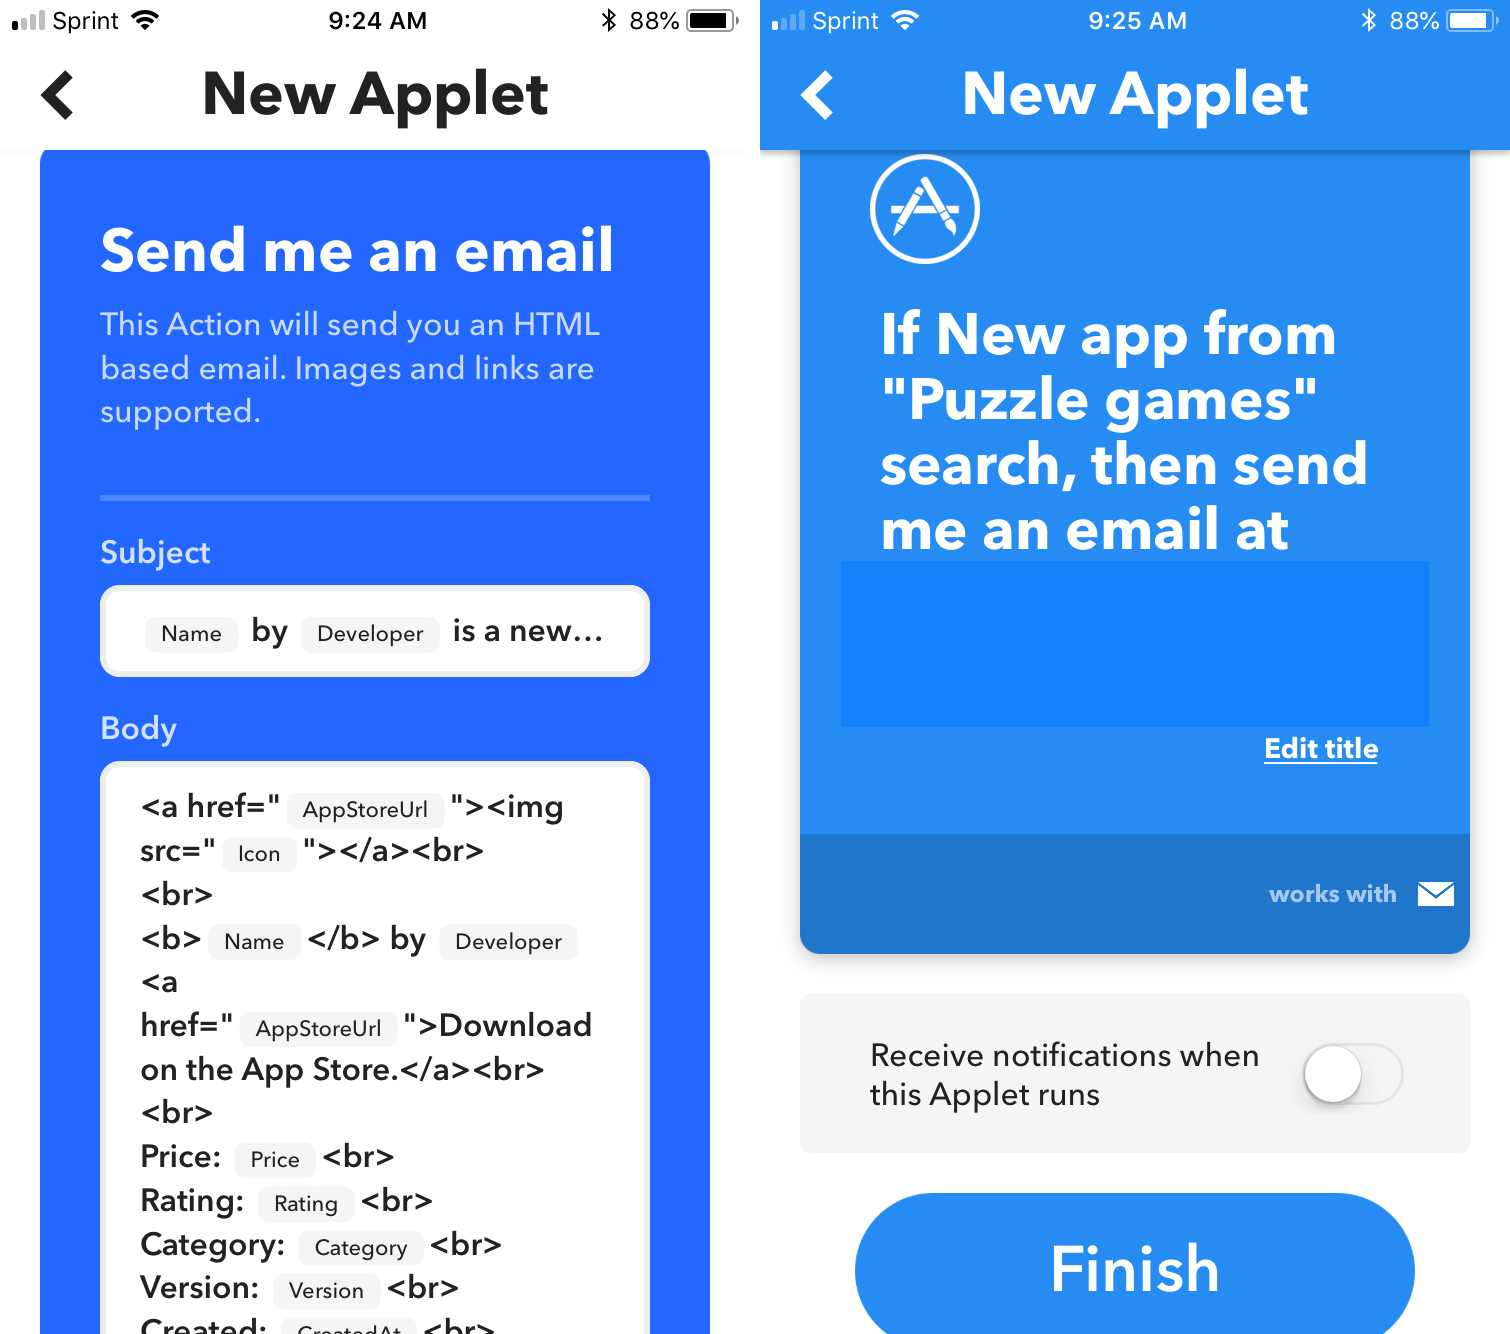 IFTTT Finish Applet Creation